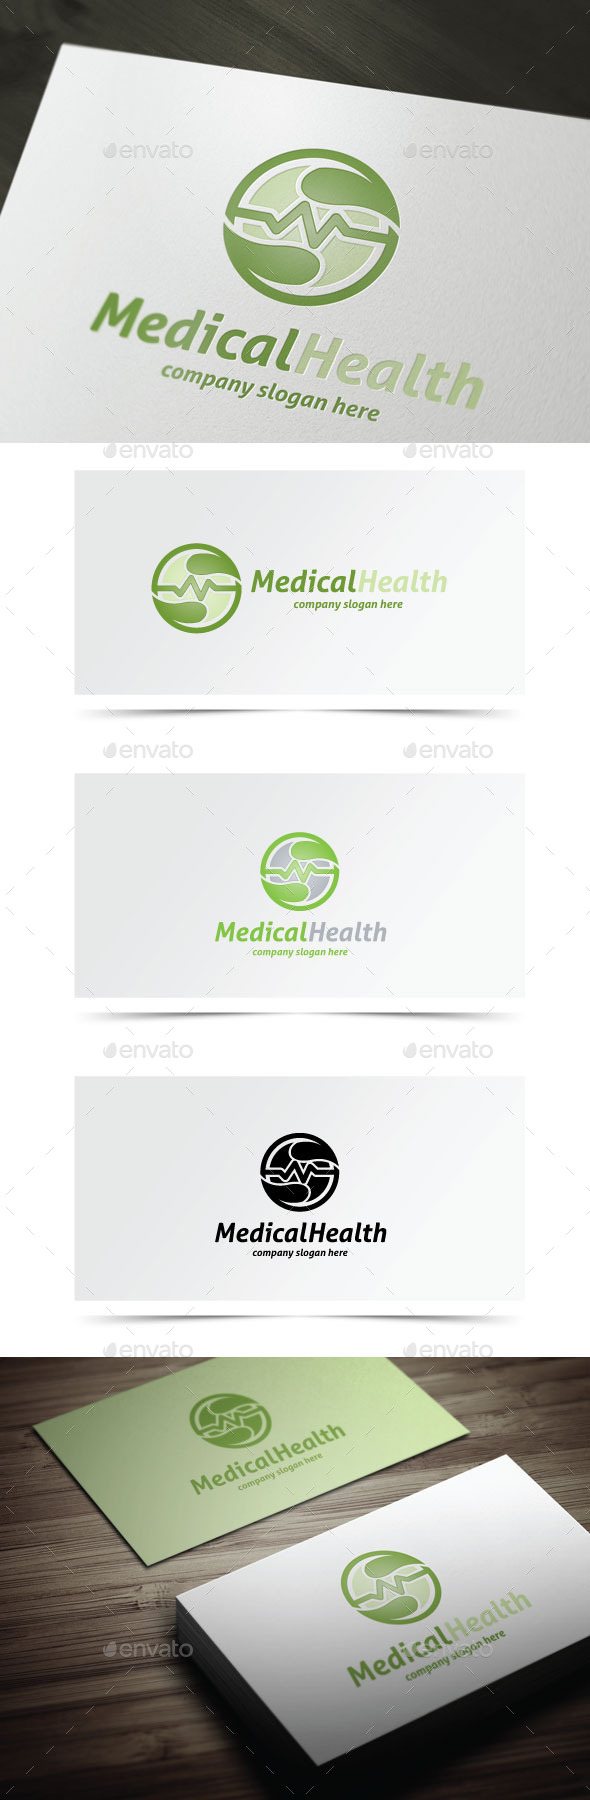 Medical Health - Objects Logo Templates